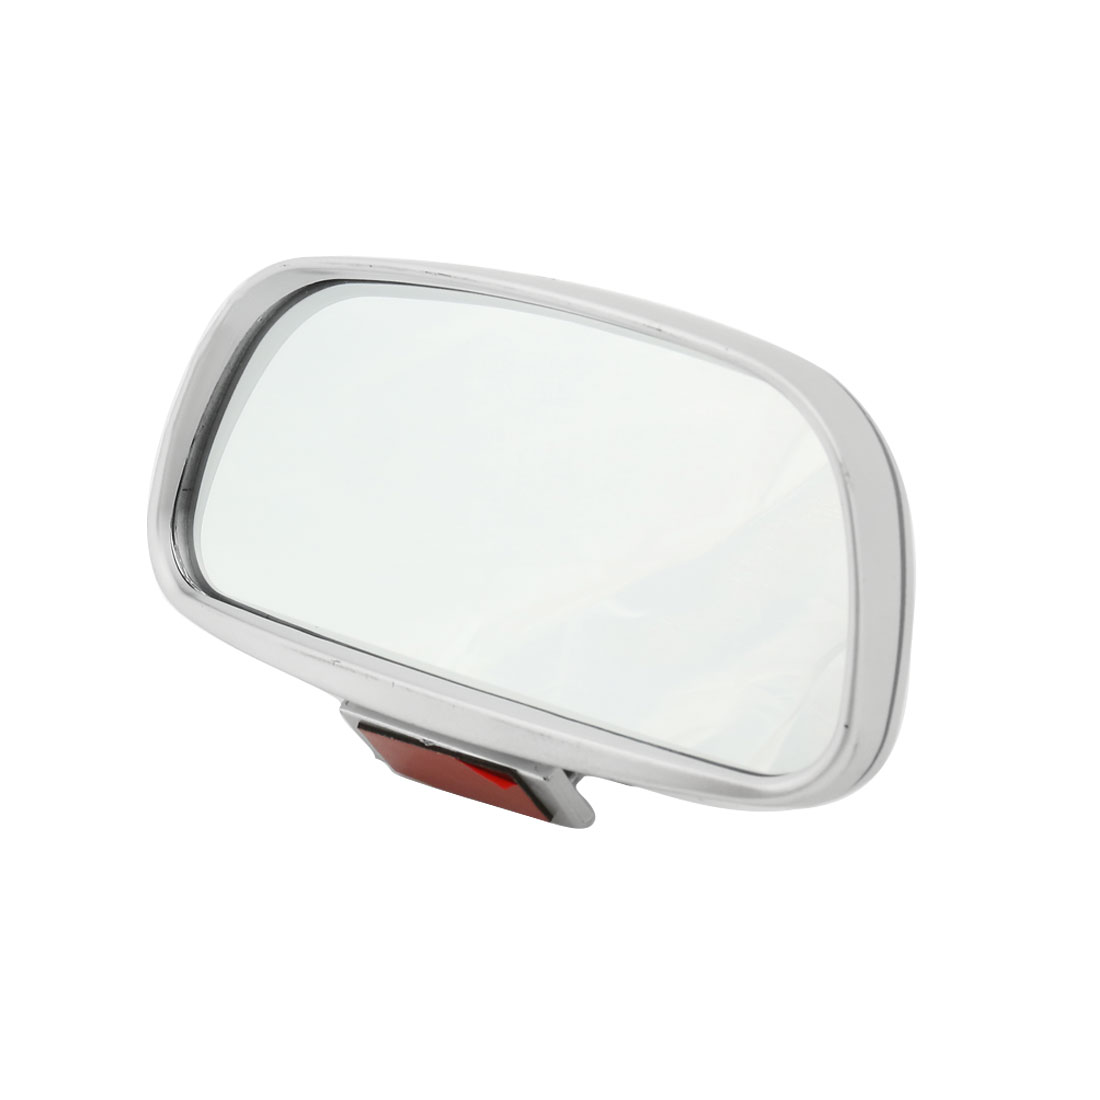 Universal Sliver Tone Wide Angle Blind Spot Side Rearview Mirror for Car Truck